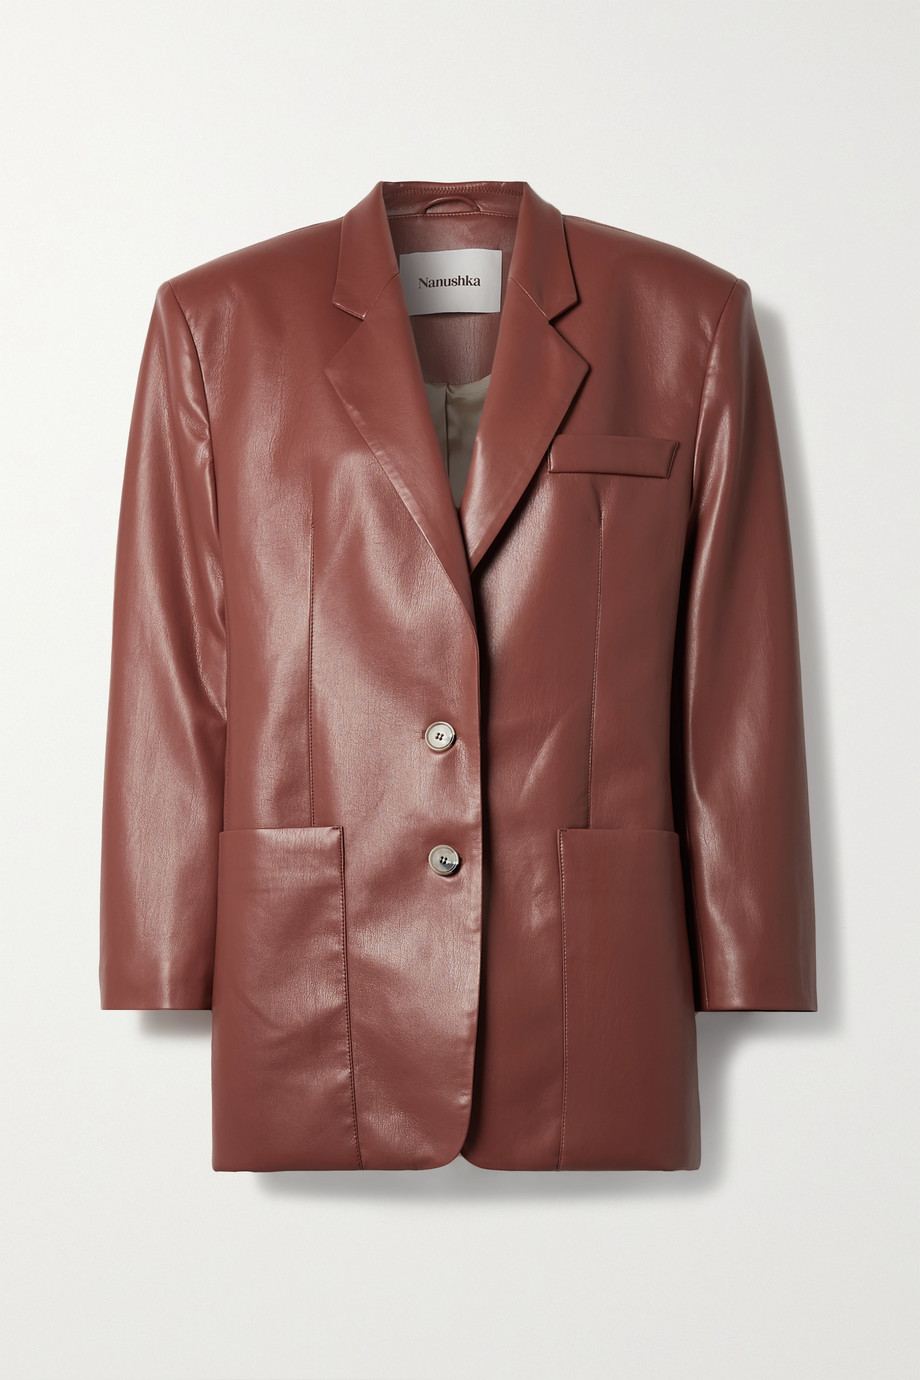 NANUSHKA Evan vegan leather blazer